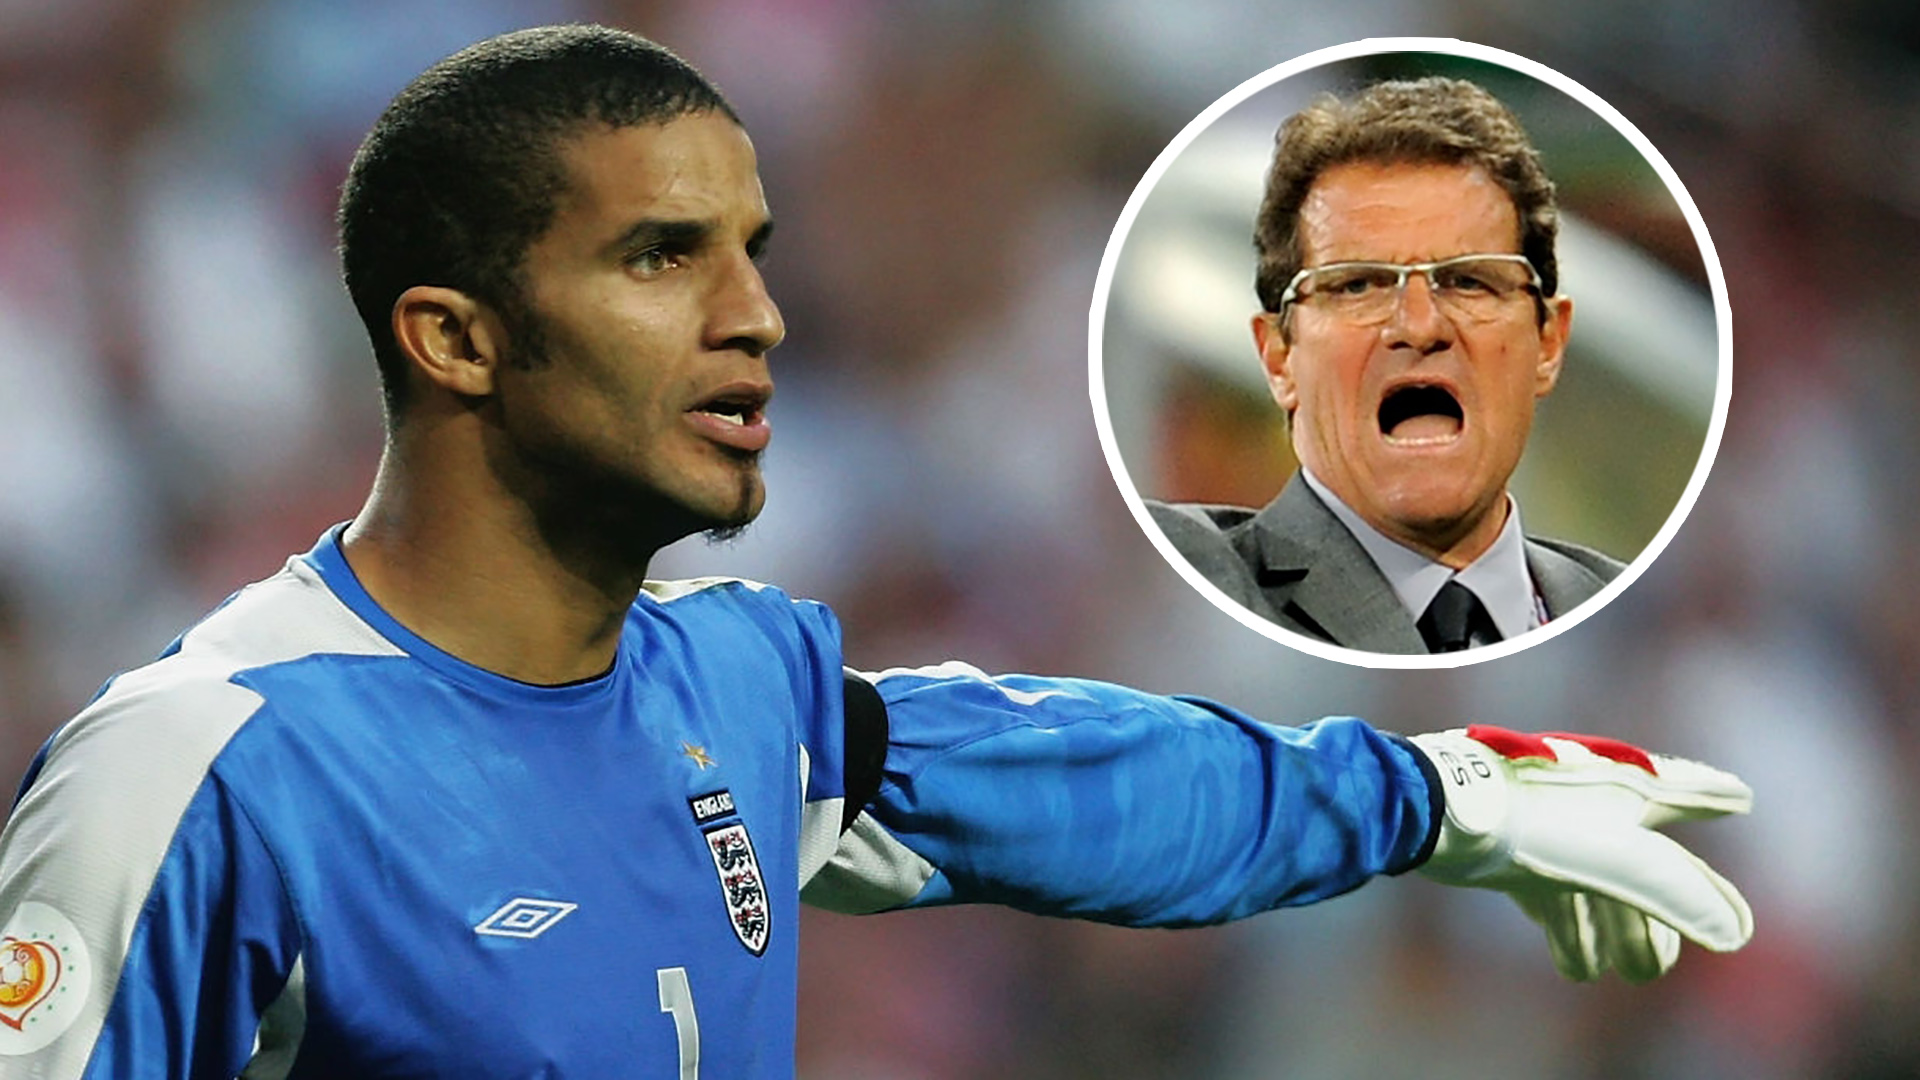 I asked England stars if they wanted Hart or 'Calamity James' after Green's World Cup horror show - Capello